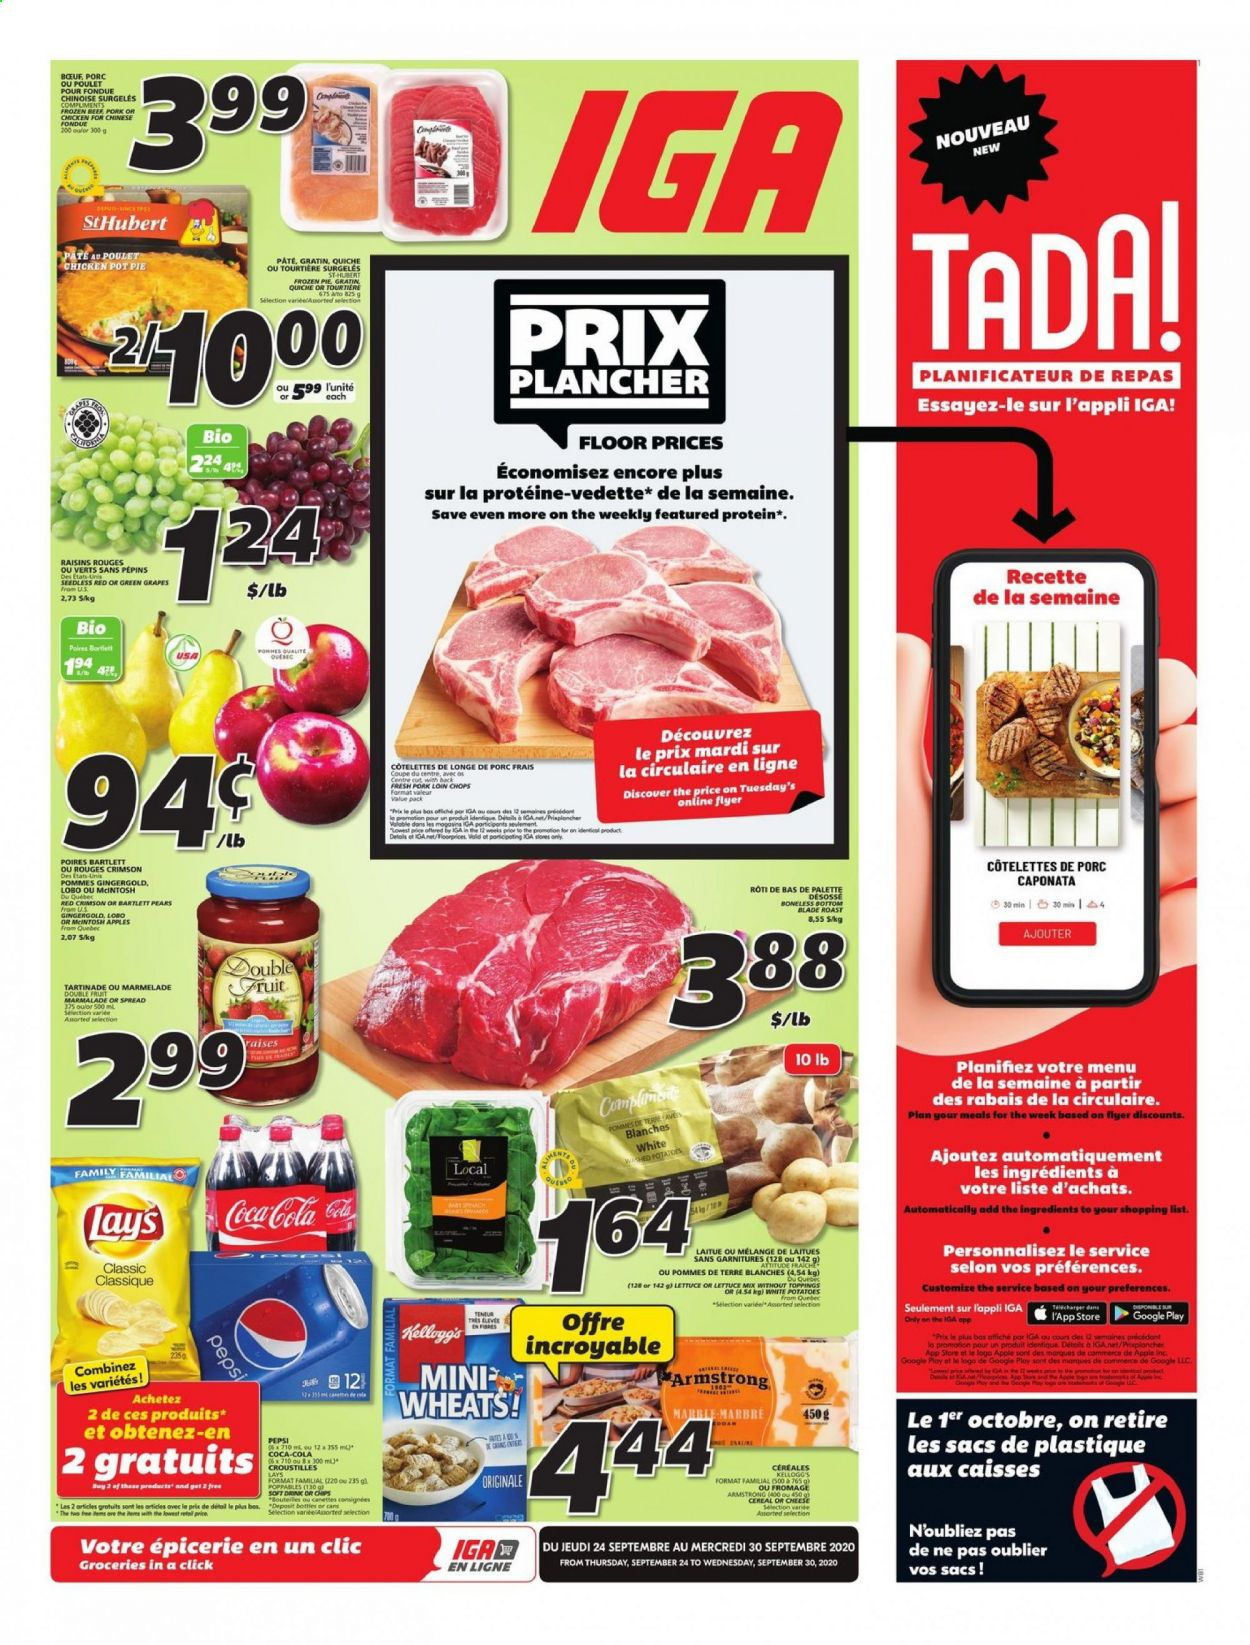 IGA Flyer - September 24, 2020 - September 30, 2020 - Sales products - bartlett pears, beef meat, bottom, cereals, coca-cola, frozen, gain, google, grapes, raisins, pork loin, pork meat, pot, pot pies, potatoes, protein, chicken, palette, pears, pepsi, lettuce, cheese, pie, cereal, poulet, porc, coupe, fondue, fromage, vedette, kellogg's, marble, mcintosh, pommes de terre, plancher, pâtes, fruits, discover, drink, blade, roast, soft drink, pâte. Page 1.